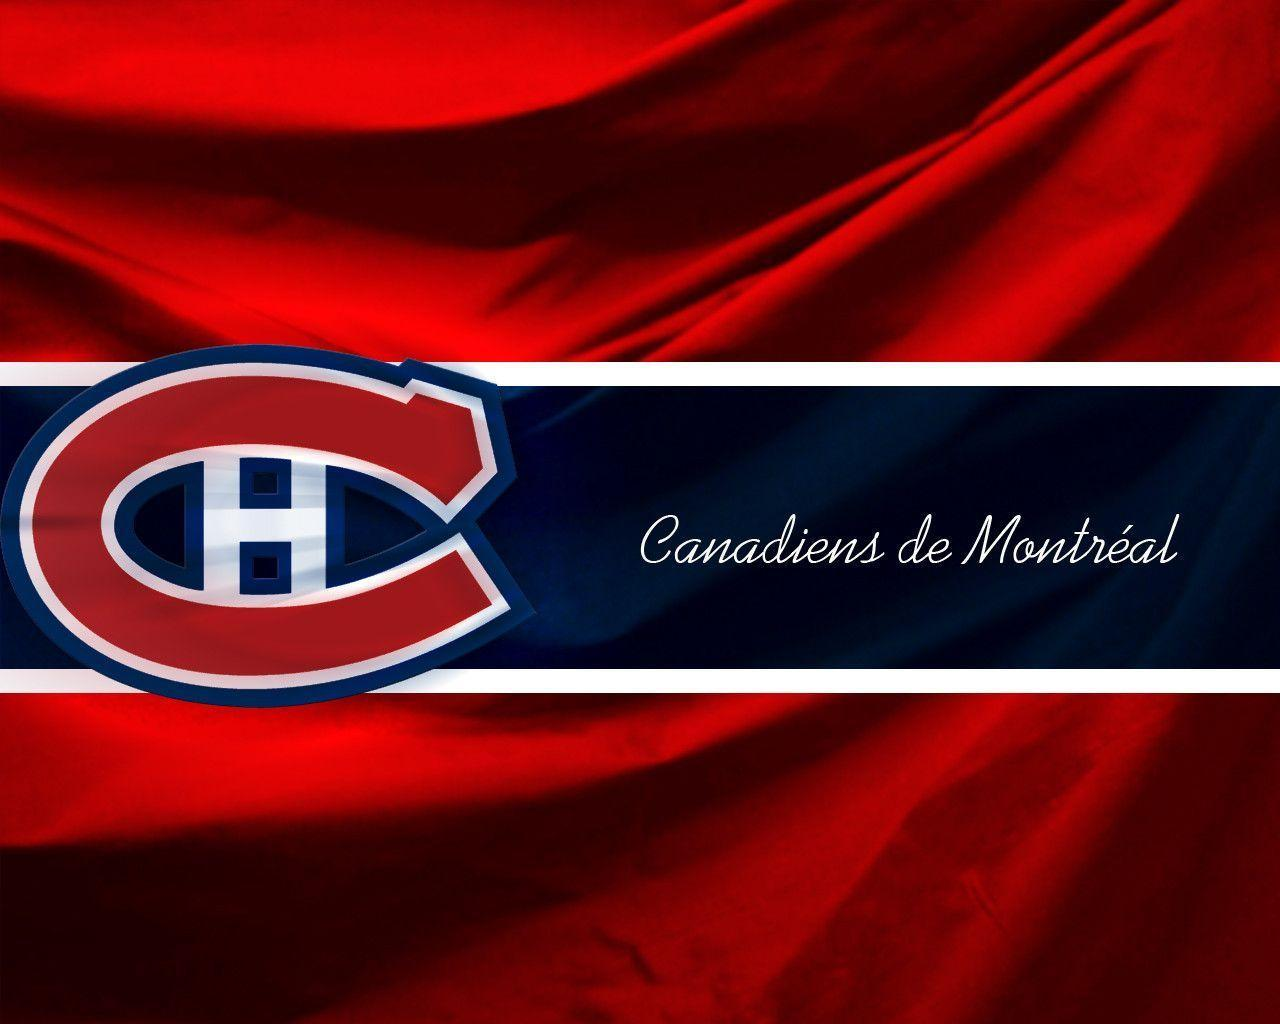 Montreal Canadiens Wallpapers - Wallpaper Cave